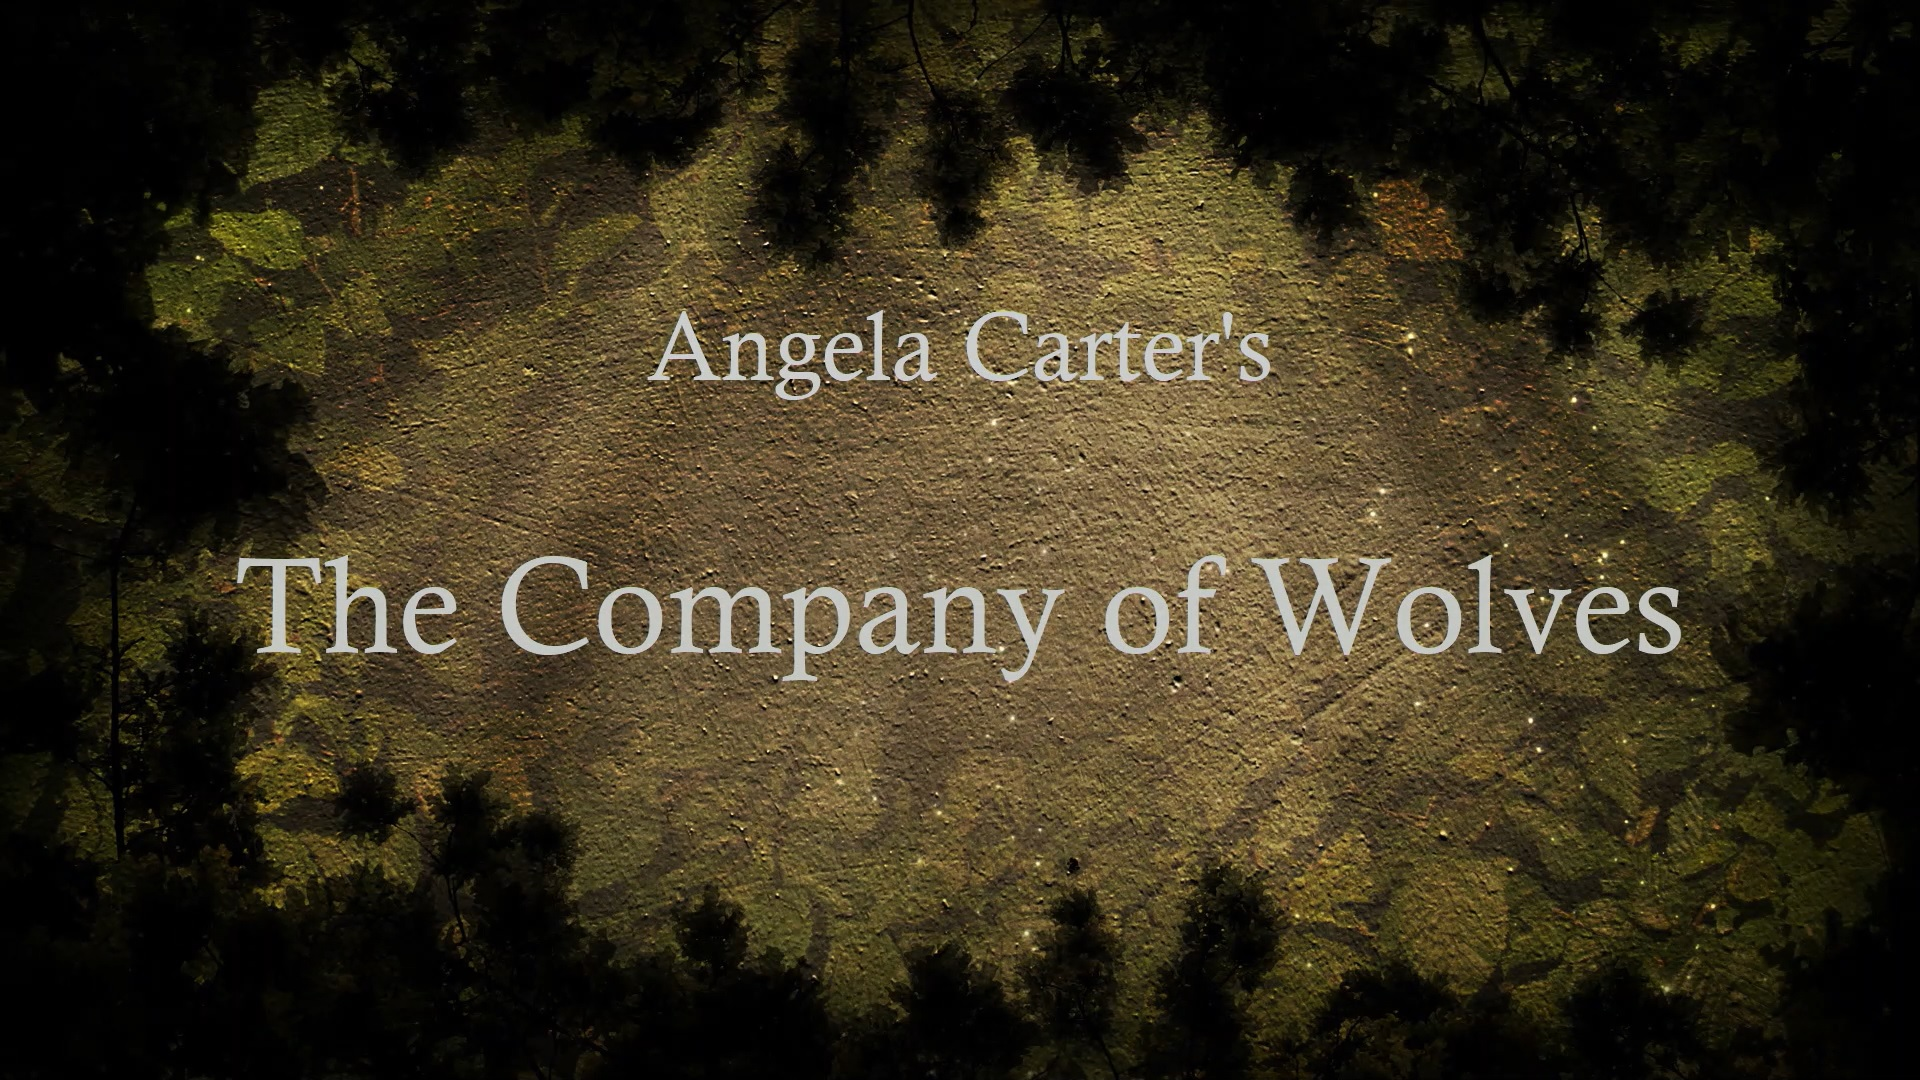 Angela Carter's 'The Company of Wolves' – Full Readthrough Thumbnail